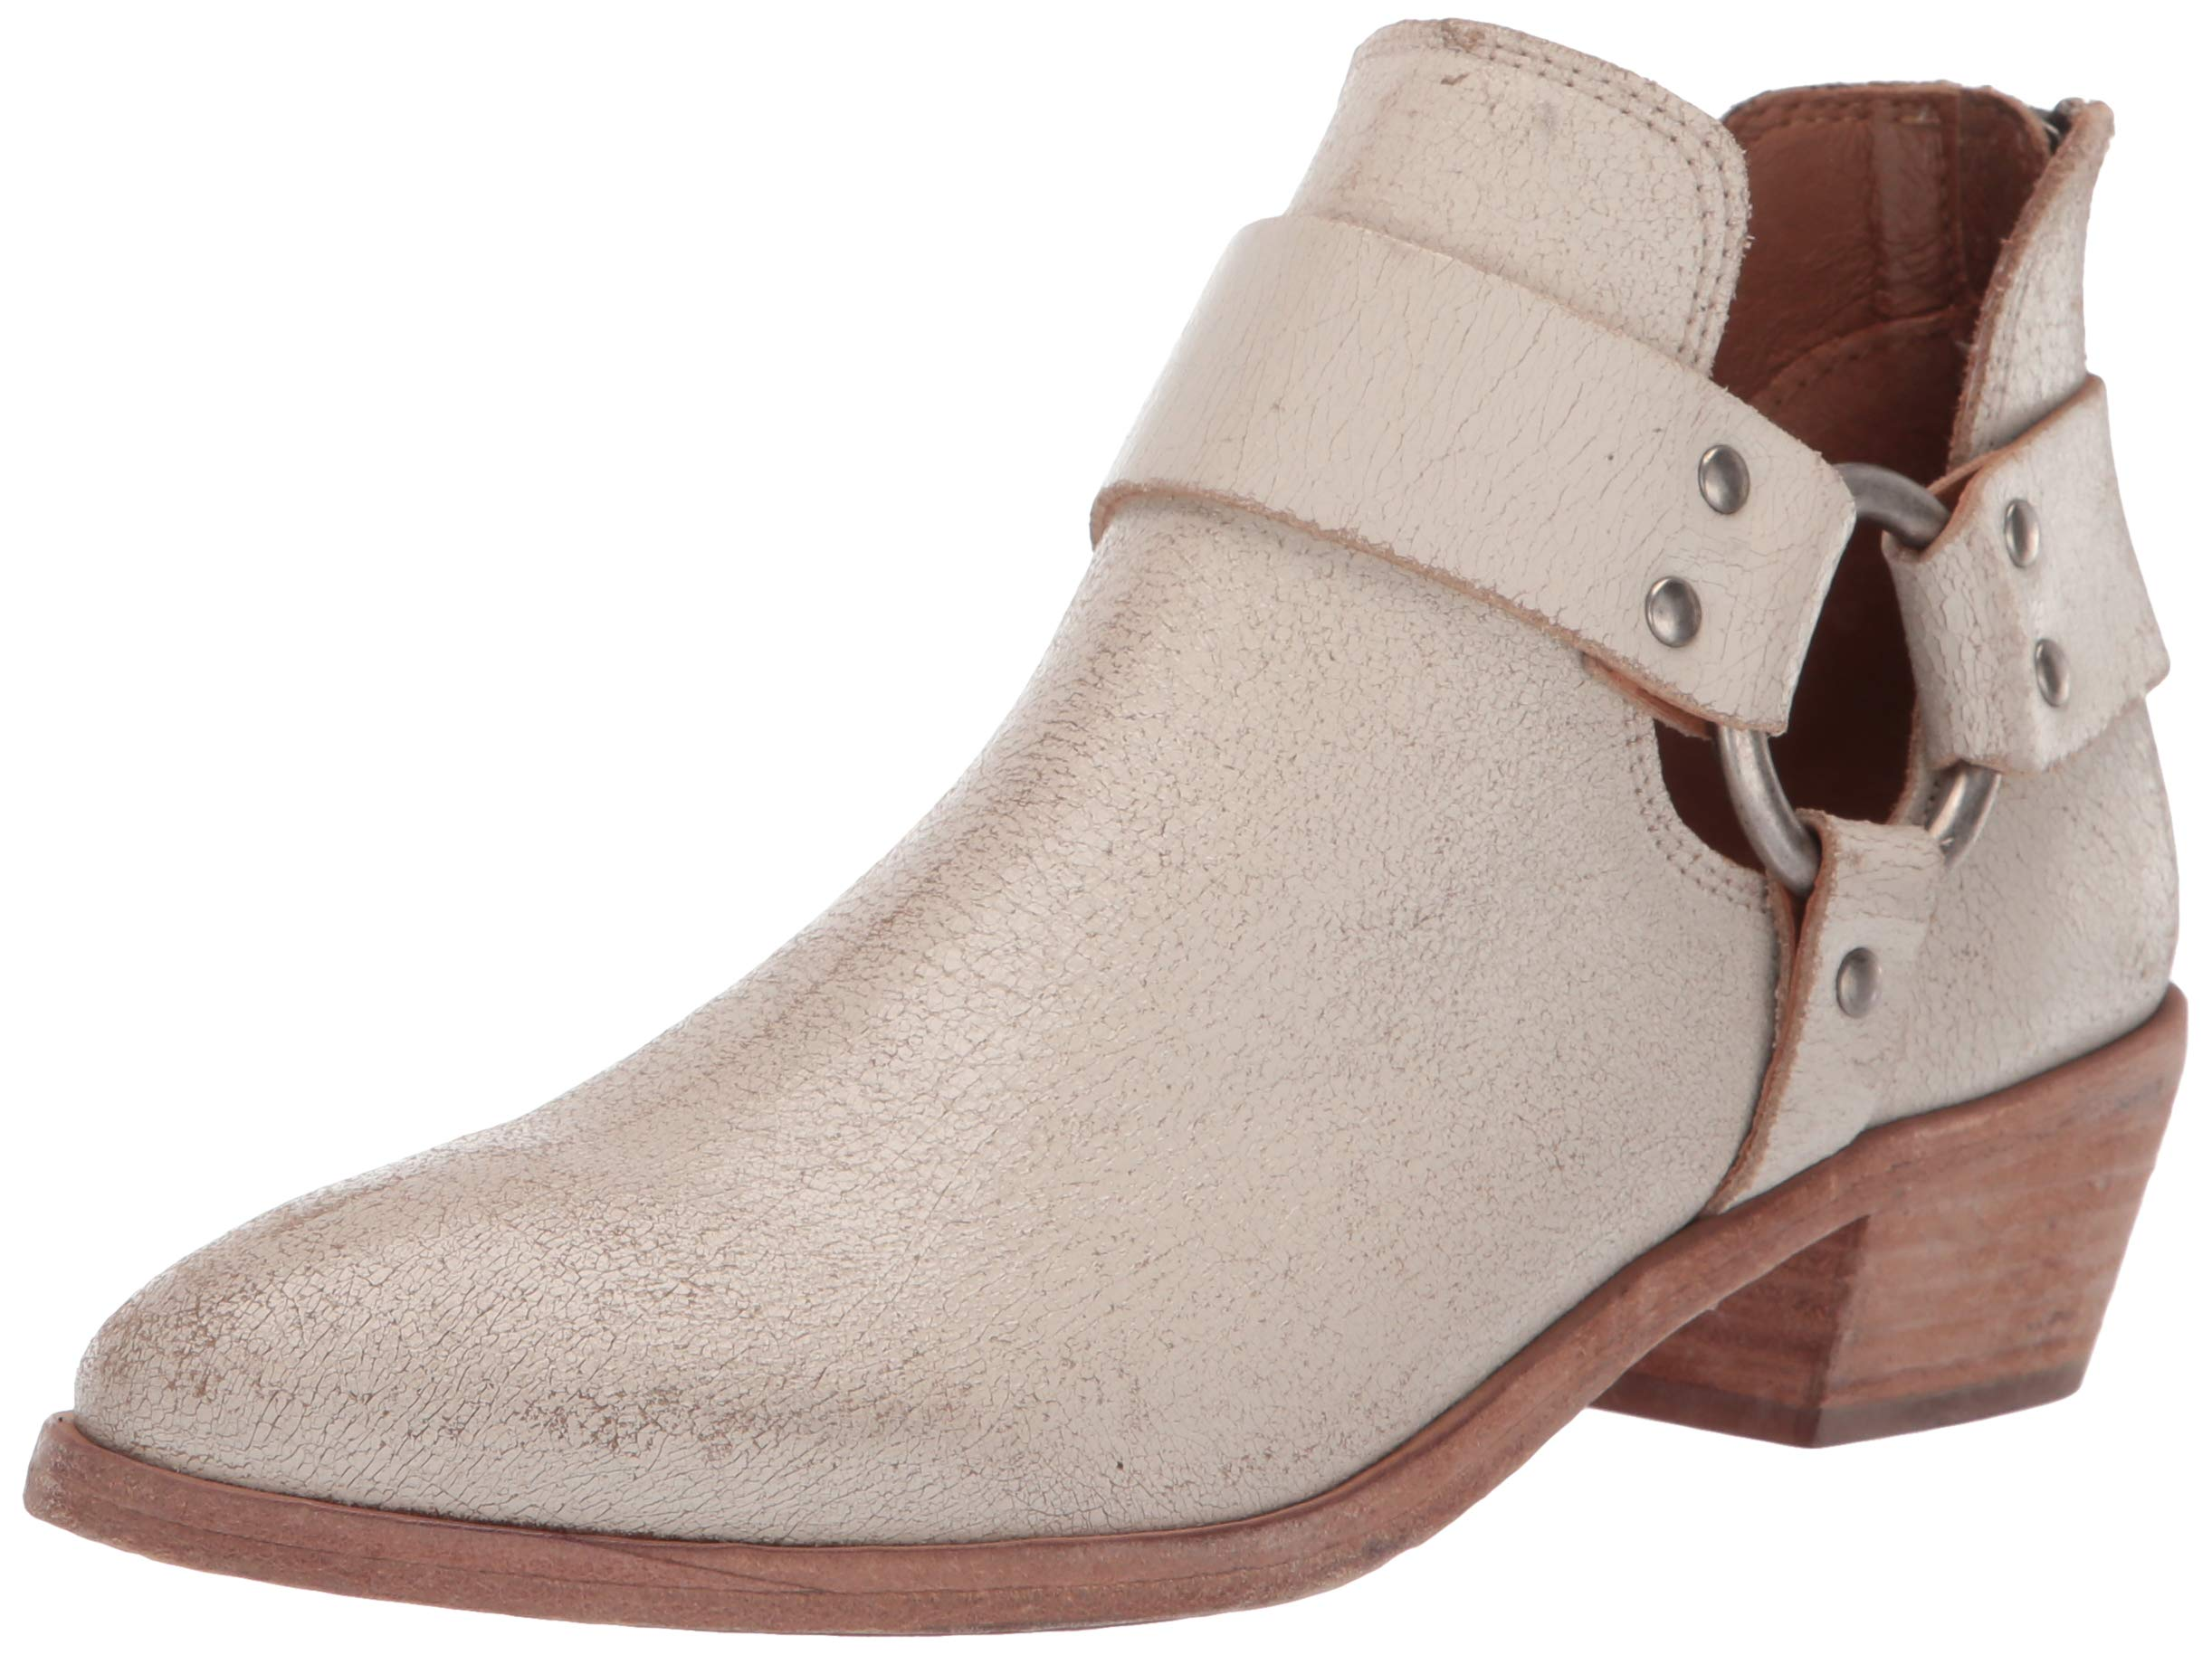 FRYE Women's RAY Harness Back Zip Ankle Boot, Off Off White, 6.5 M US by FRYE